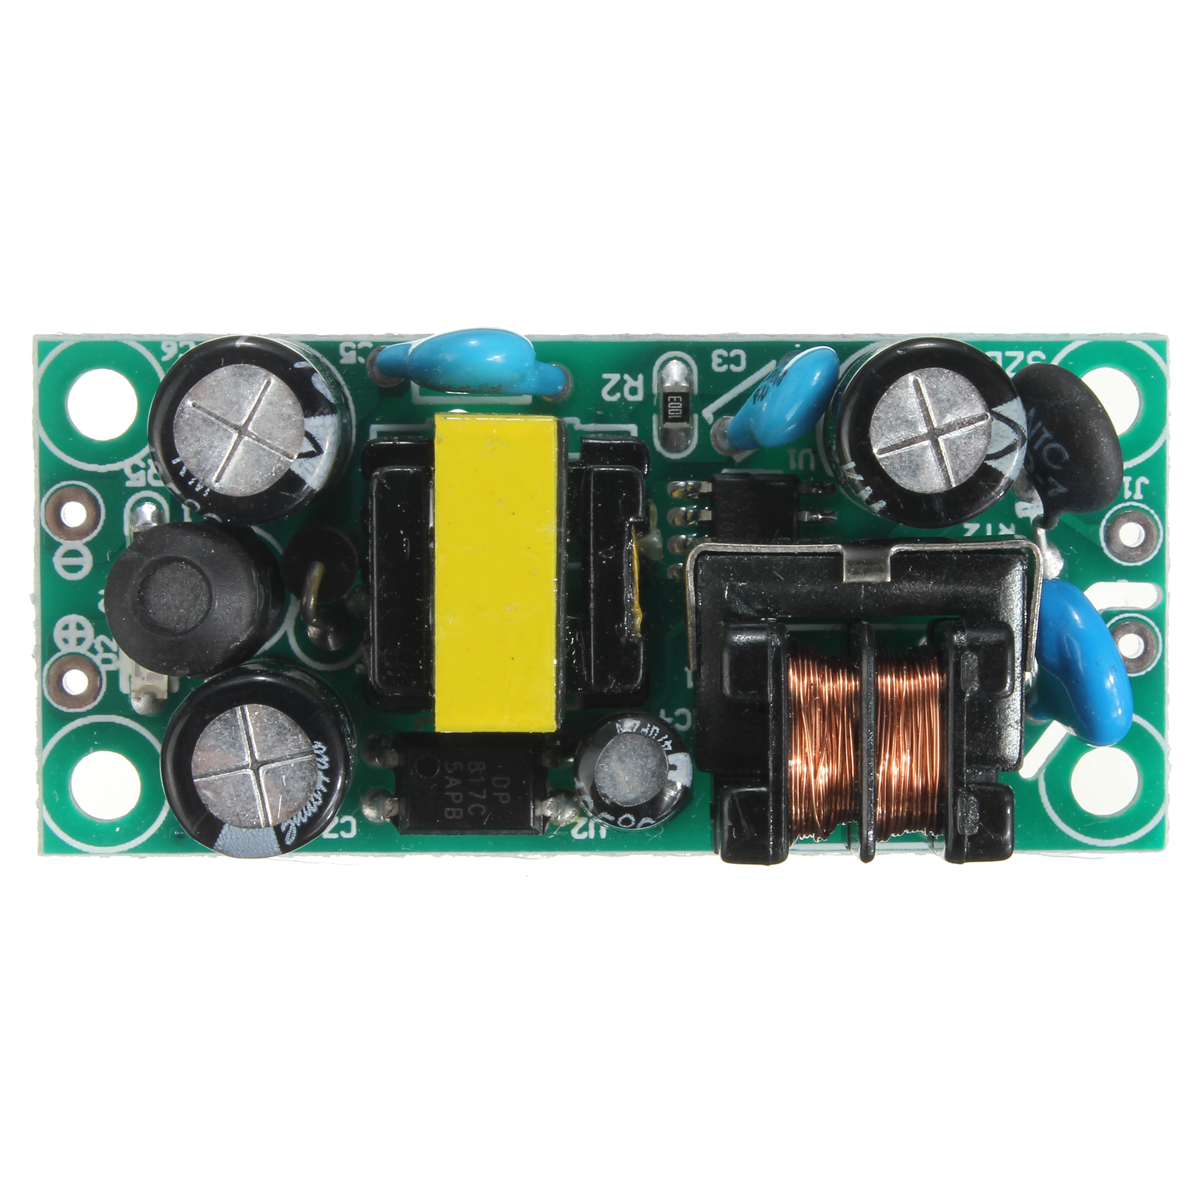 3Pcs 5V 1A AC-DC Power Supply Step Down Module Bare Board